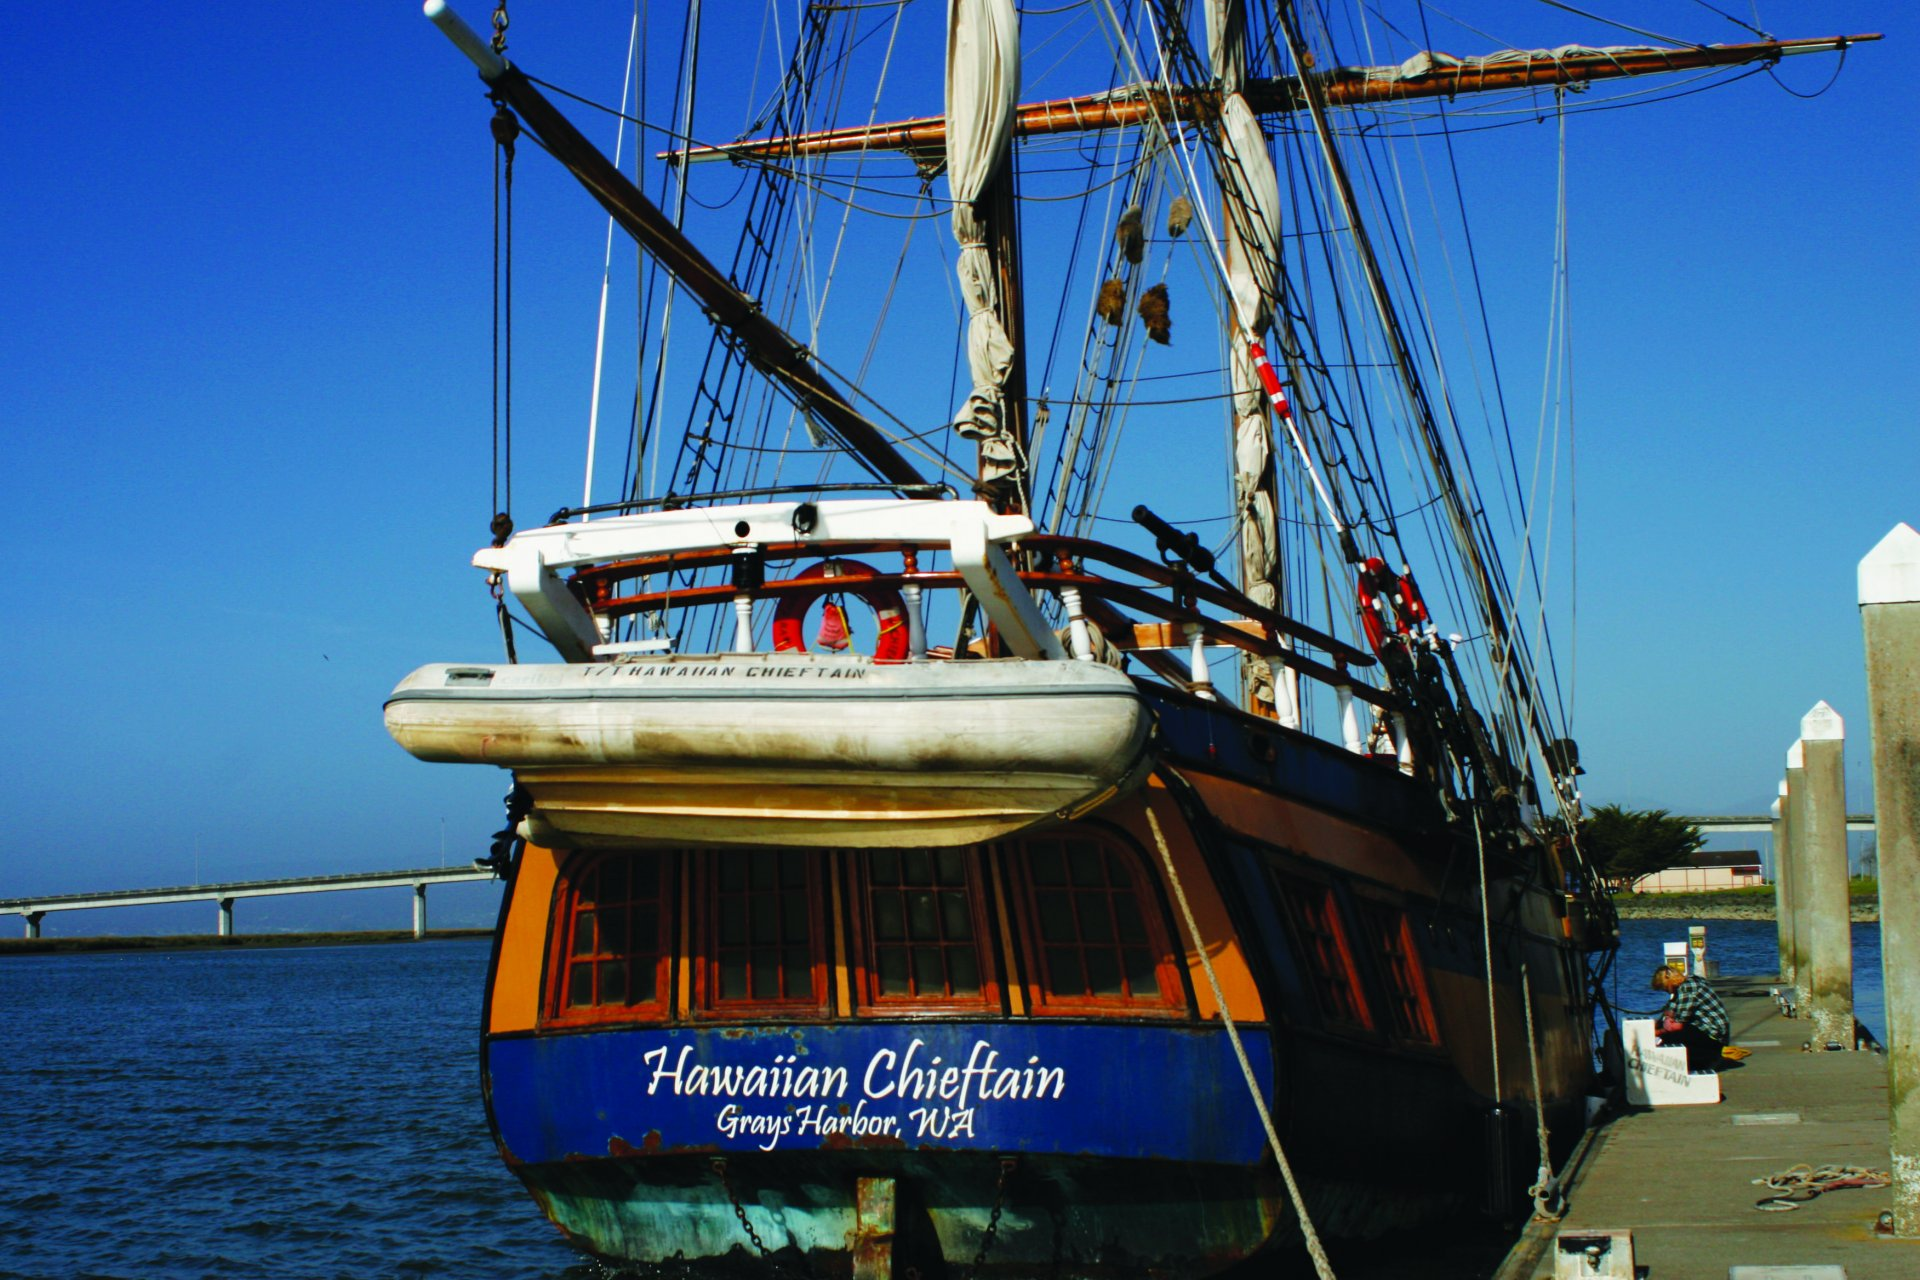 The Lady Washington was forced to seek shelter in Bodega Bay, but her sister ship, the Hawaiian Chieftain was offering tours and sailing trips all weekend. | Photo by Silvia Alfonso